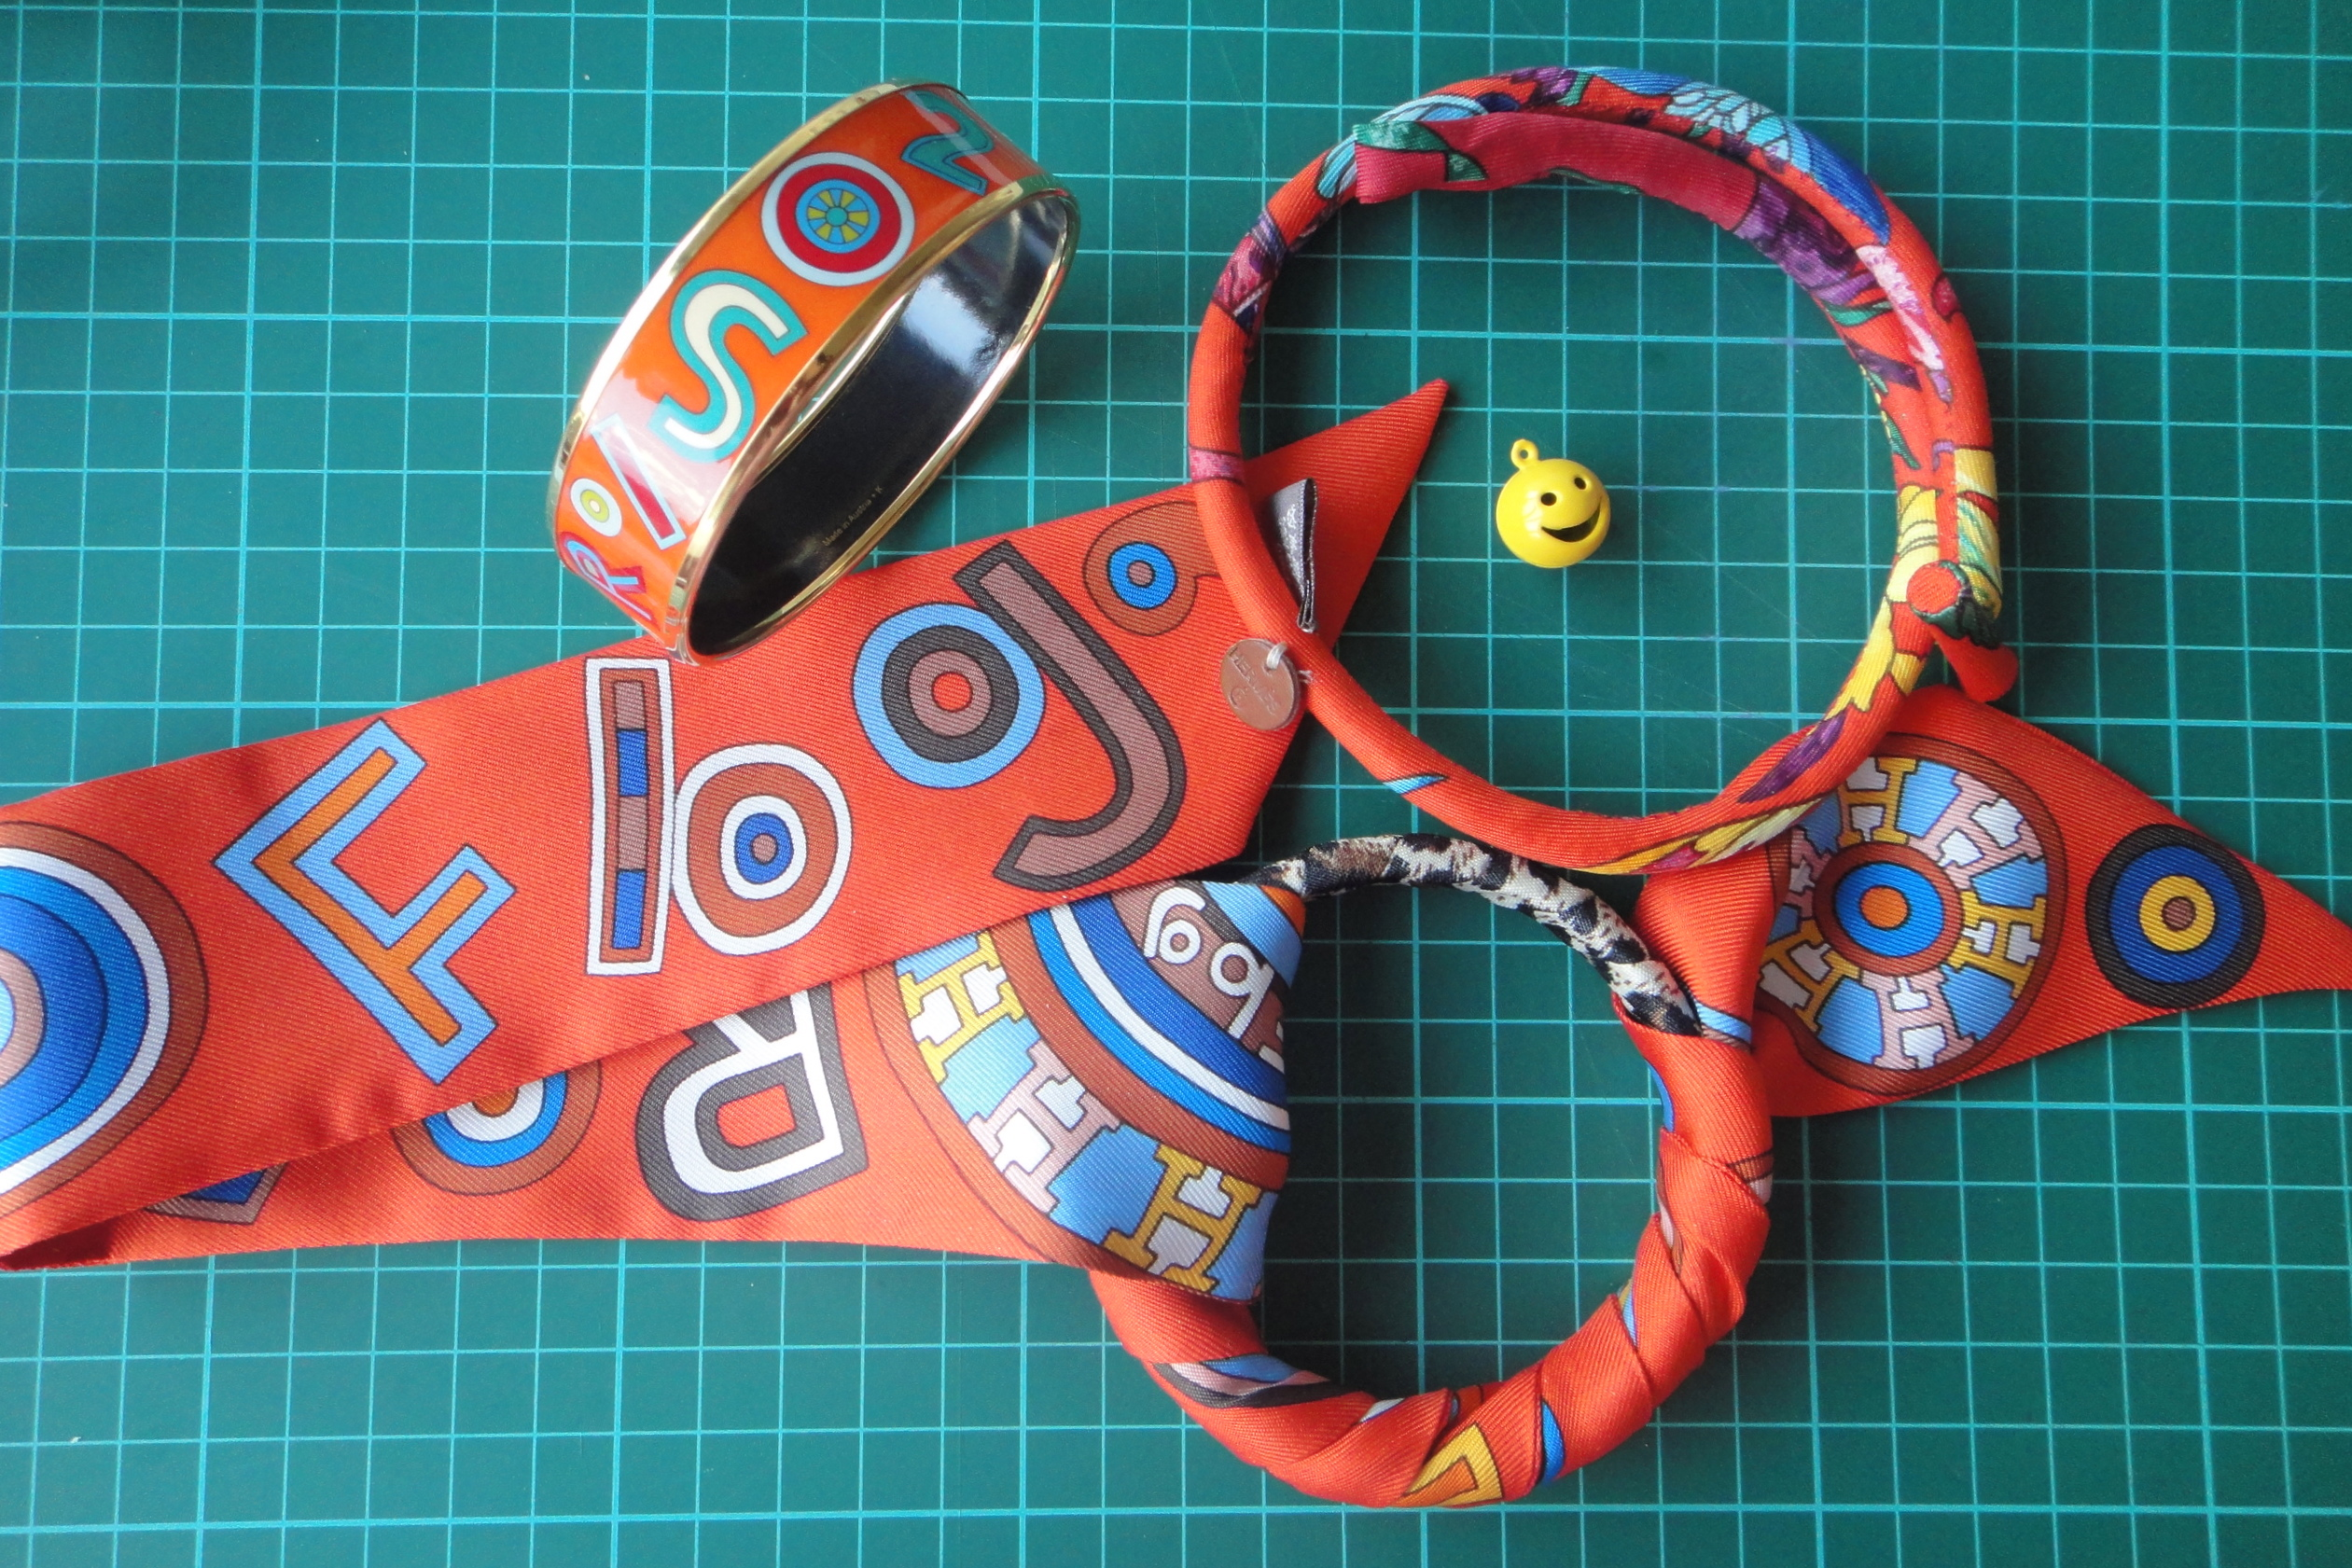 Hermès Tohu Bohu bangle & Twilly, petit h bracelet